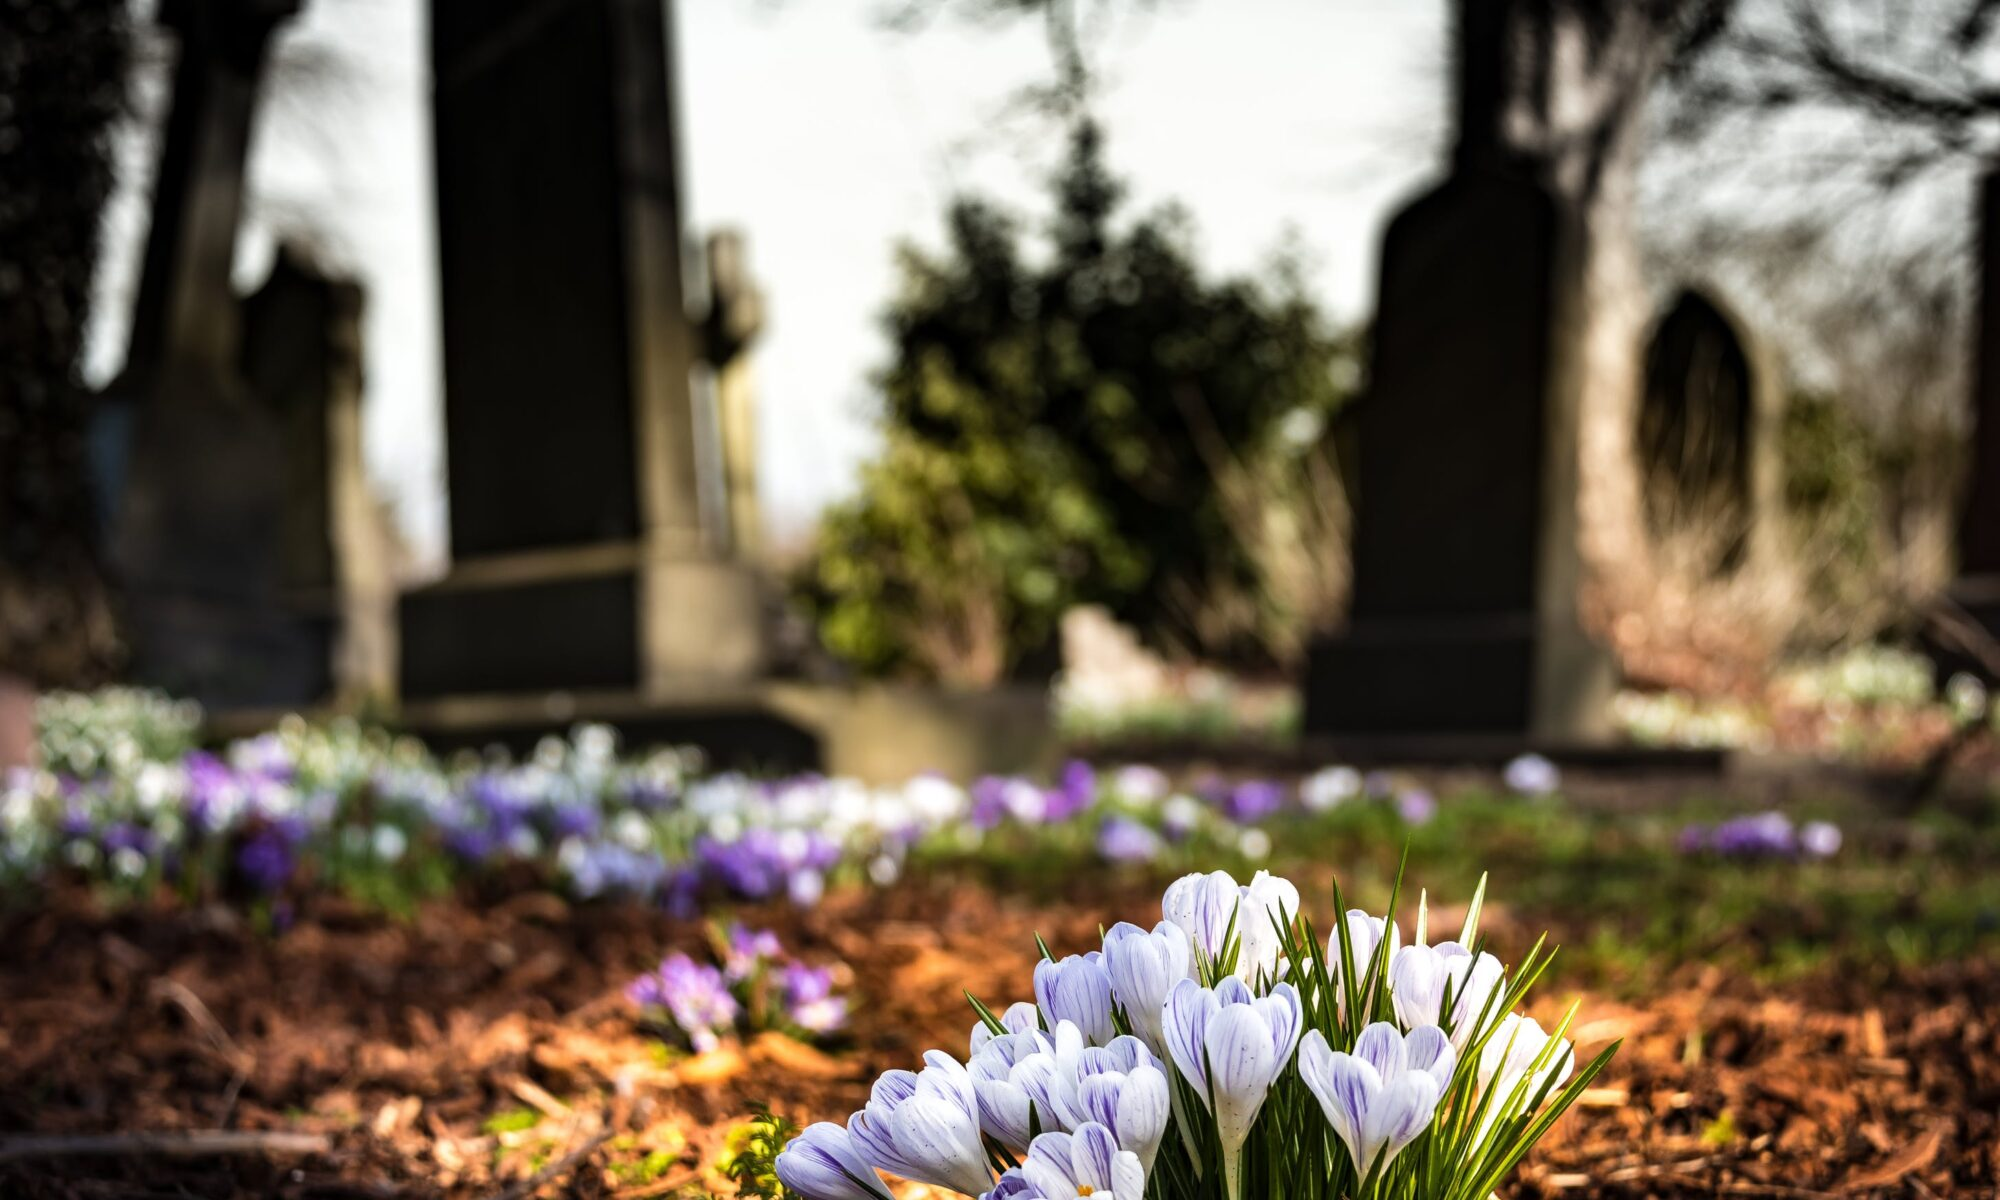 purple flowers growing in a cemetery